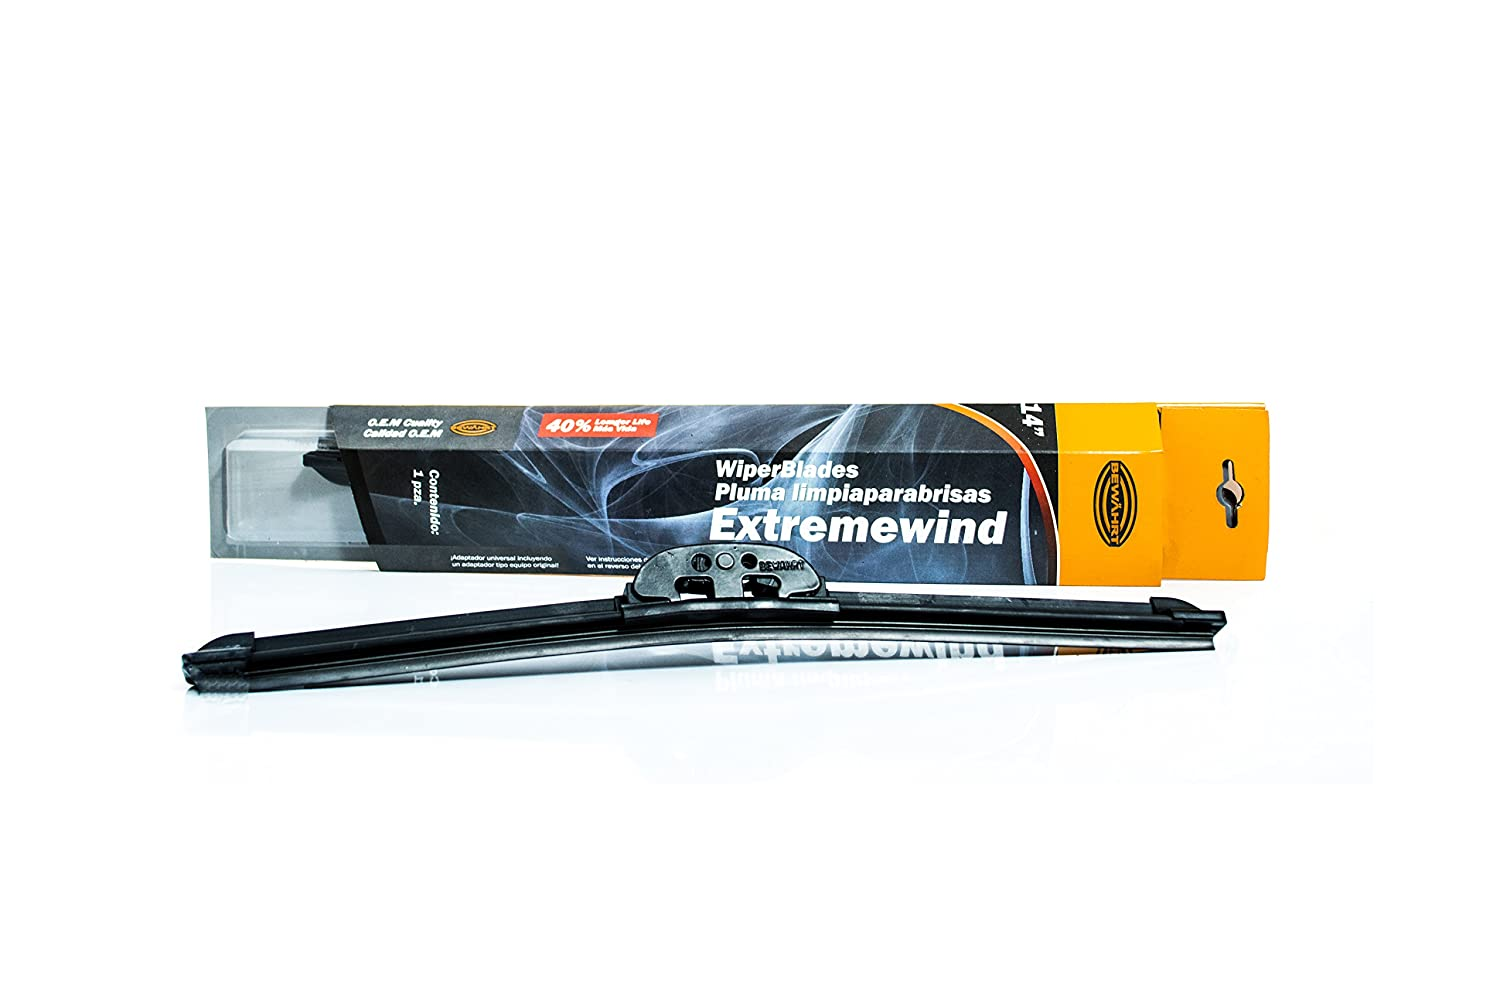 Extremewind Universal Wiper Blades - Graphite Coated Rubber - UV Coated - Metal connector for enhanced durability - Super Silent - New Style - German ...